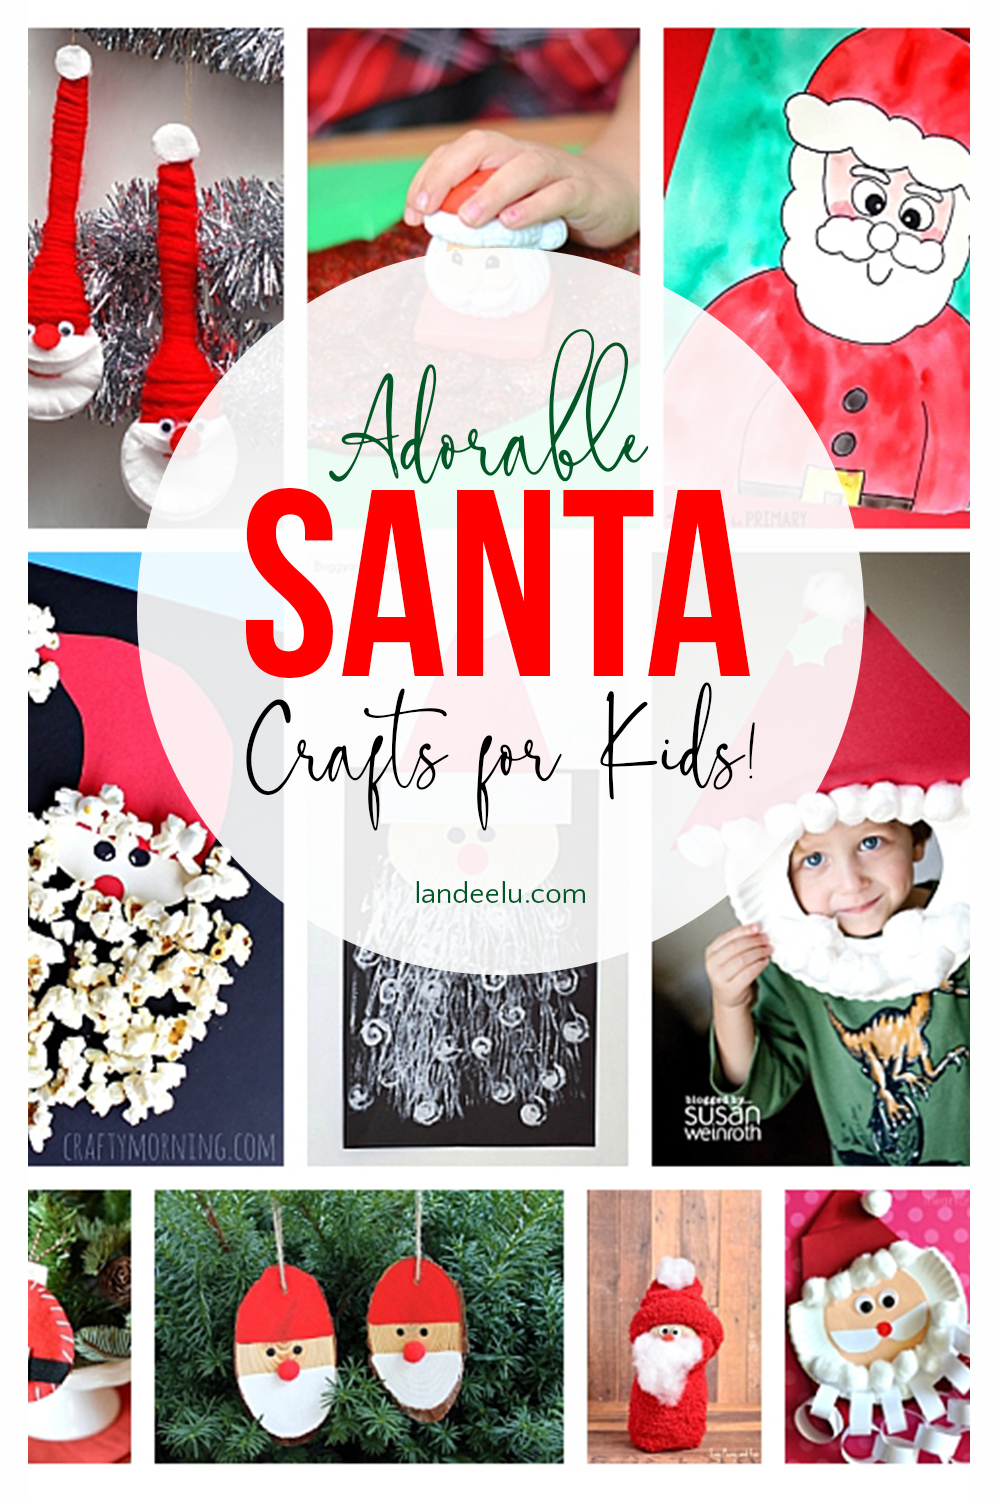 These Santa Christmas crafts for kids are too stinkin' cute! #santacrafts #christmascrafts #craftsforkids #christmascraftsforkids